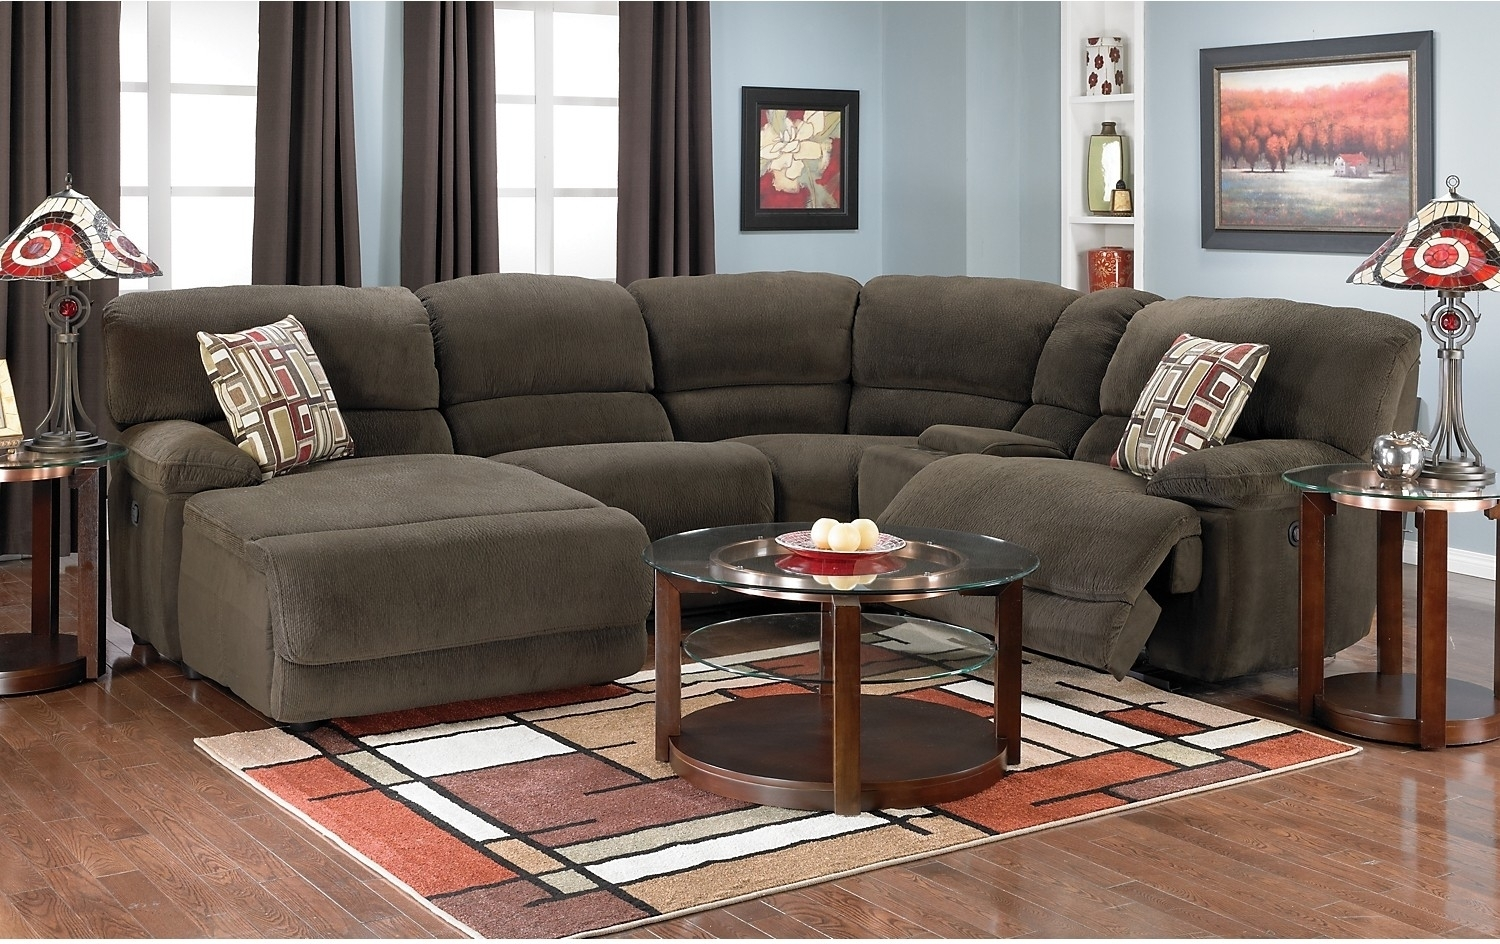 Devon Devon 5 Piece Sectional With Chaise And Sleeper Sofa within Sectional Sofas At Brick (Image 8 of 15)